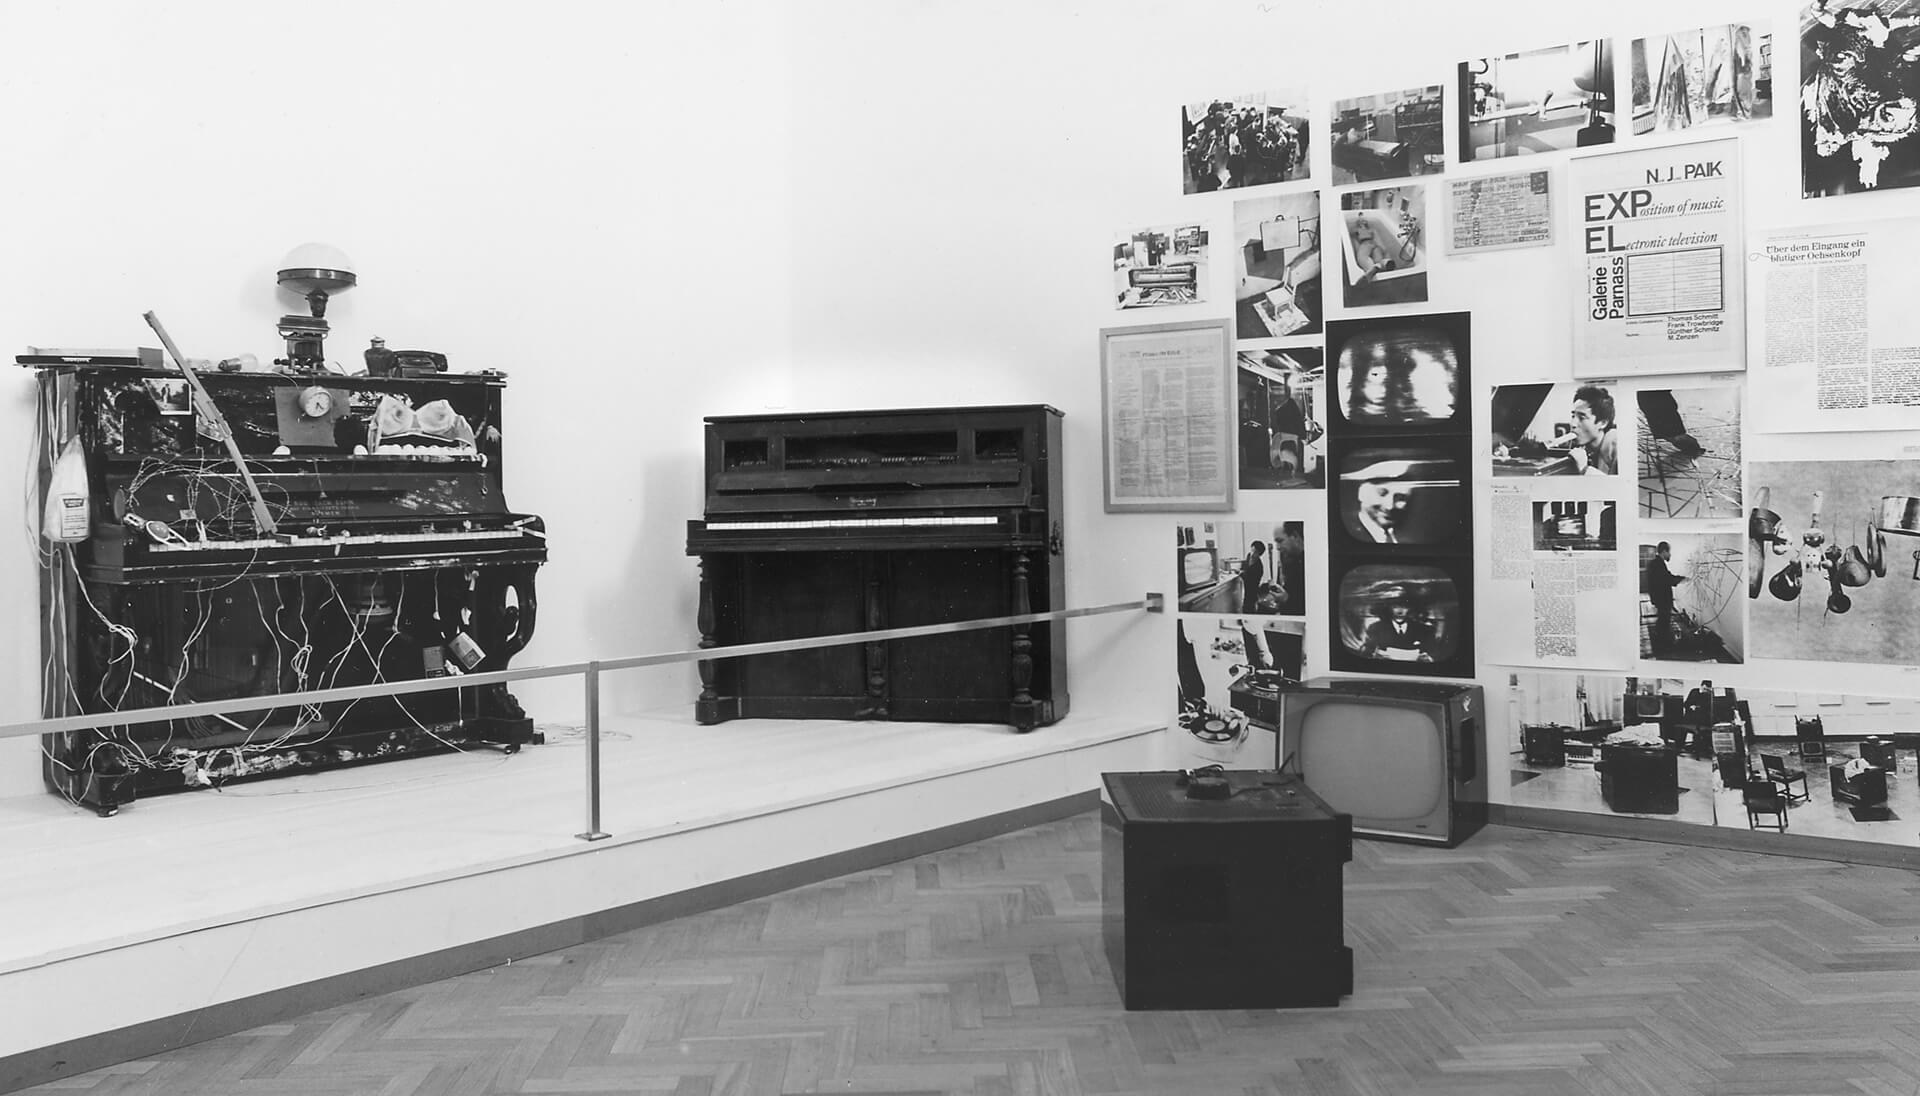 An image from Stedelijk Museum's archives of Nam June Paik's first solo encapsulates the artist's interest in music and technology | The Future Is Now by Nam June Paik | STIRworld